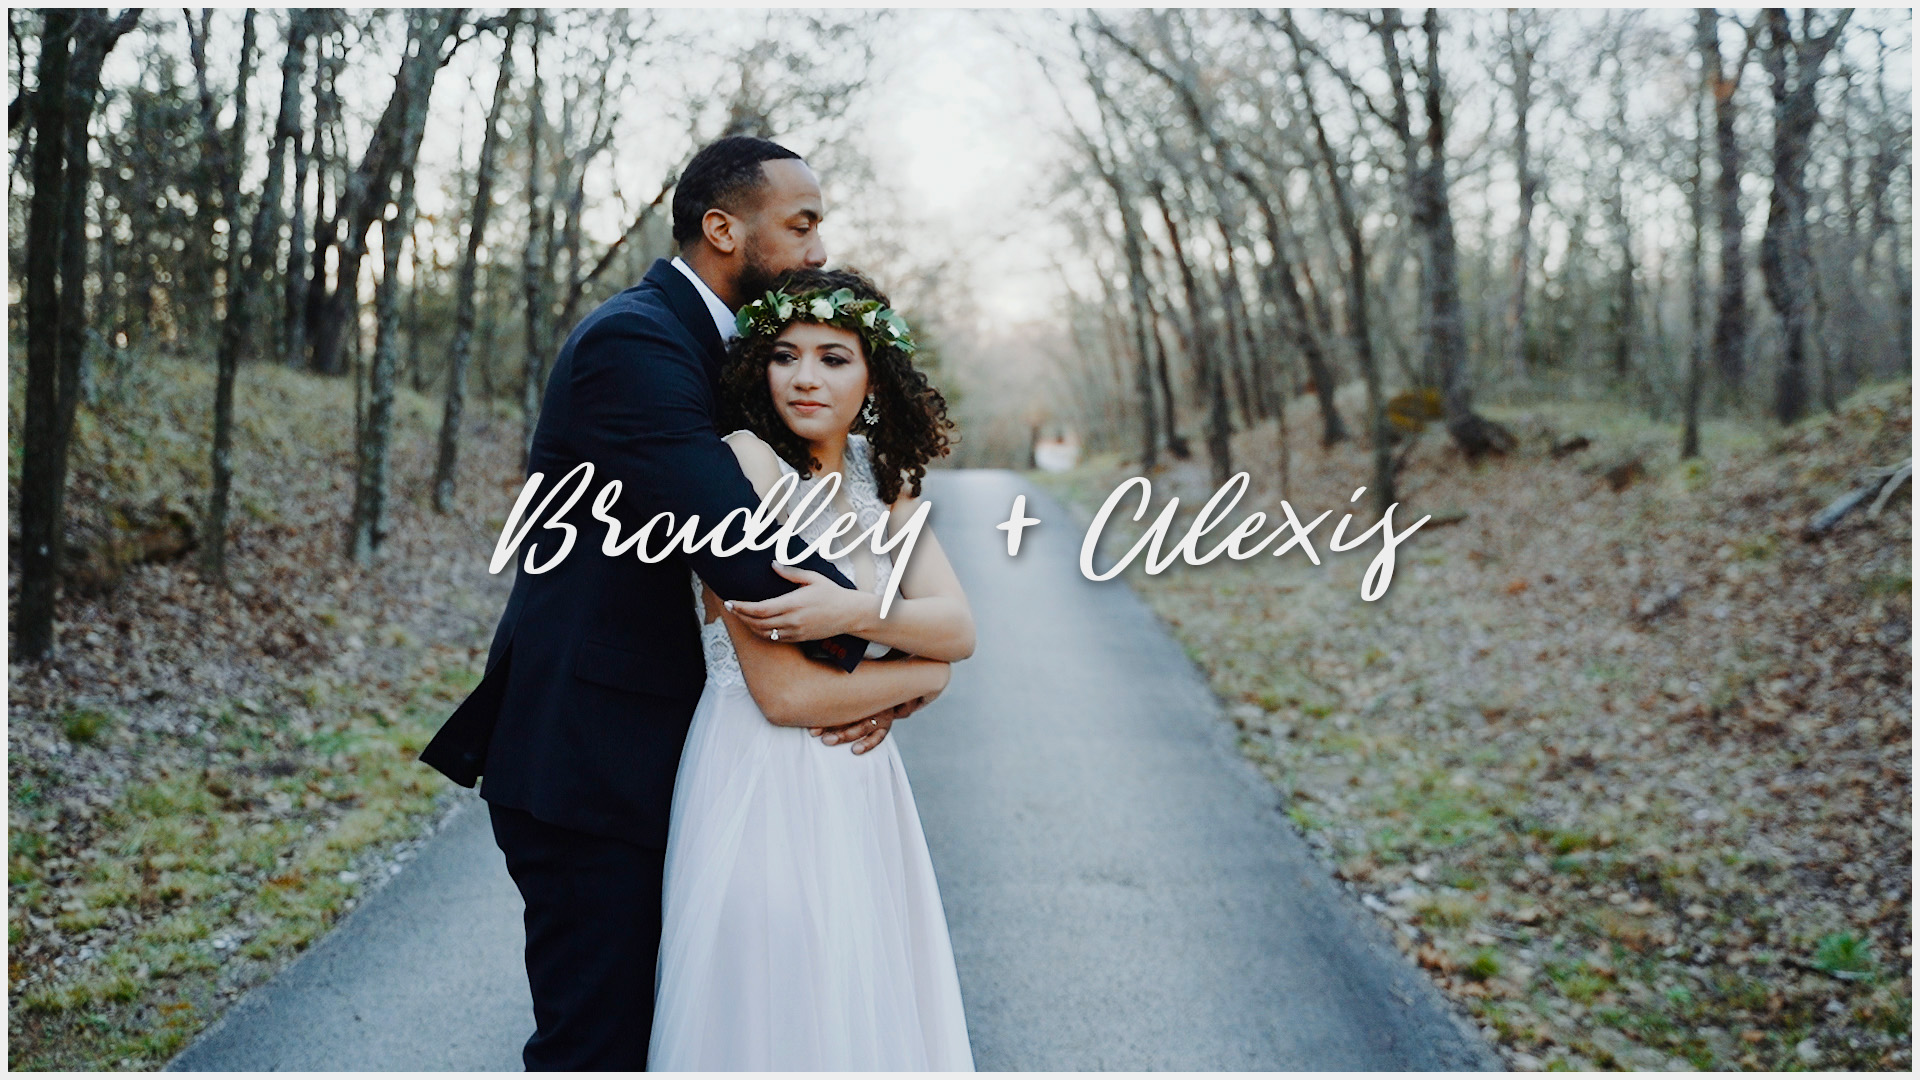 Bradley + Alexis | Aubrey, Texas | The Grove